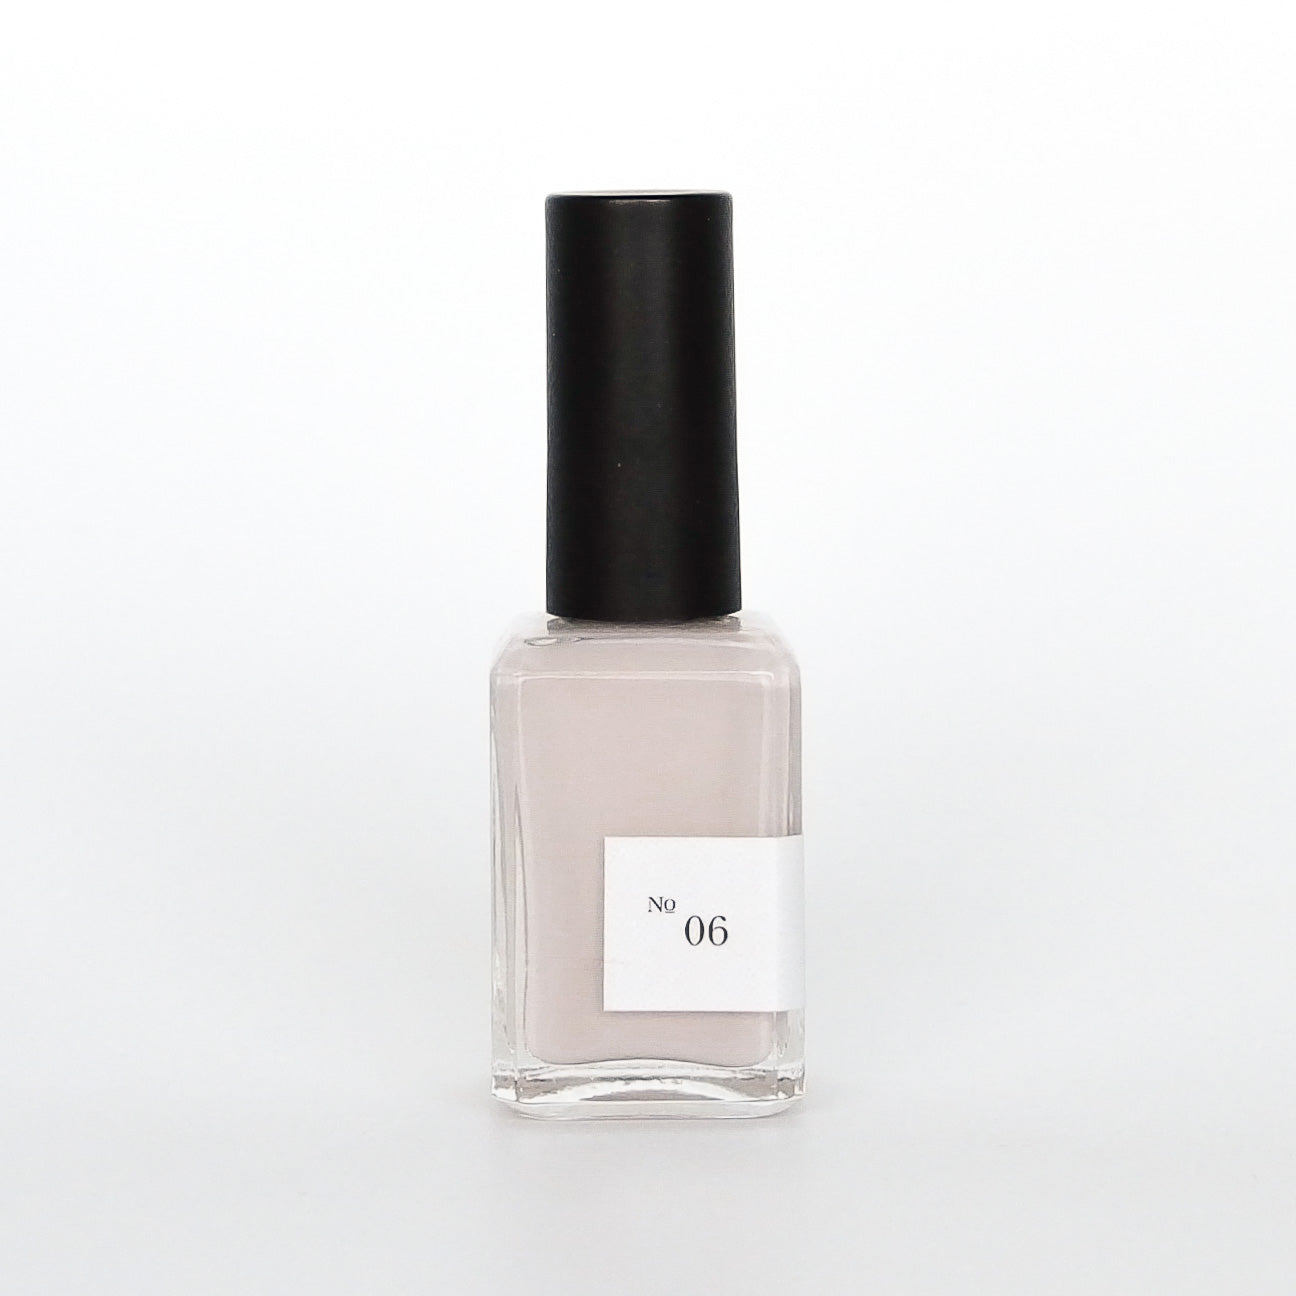 Sundays Nail Lacquer No.6, Nails, Sundays - Astrid Wylde